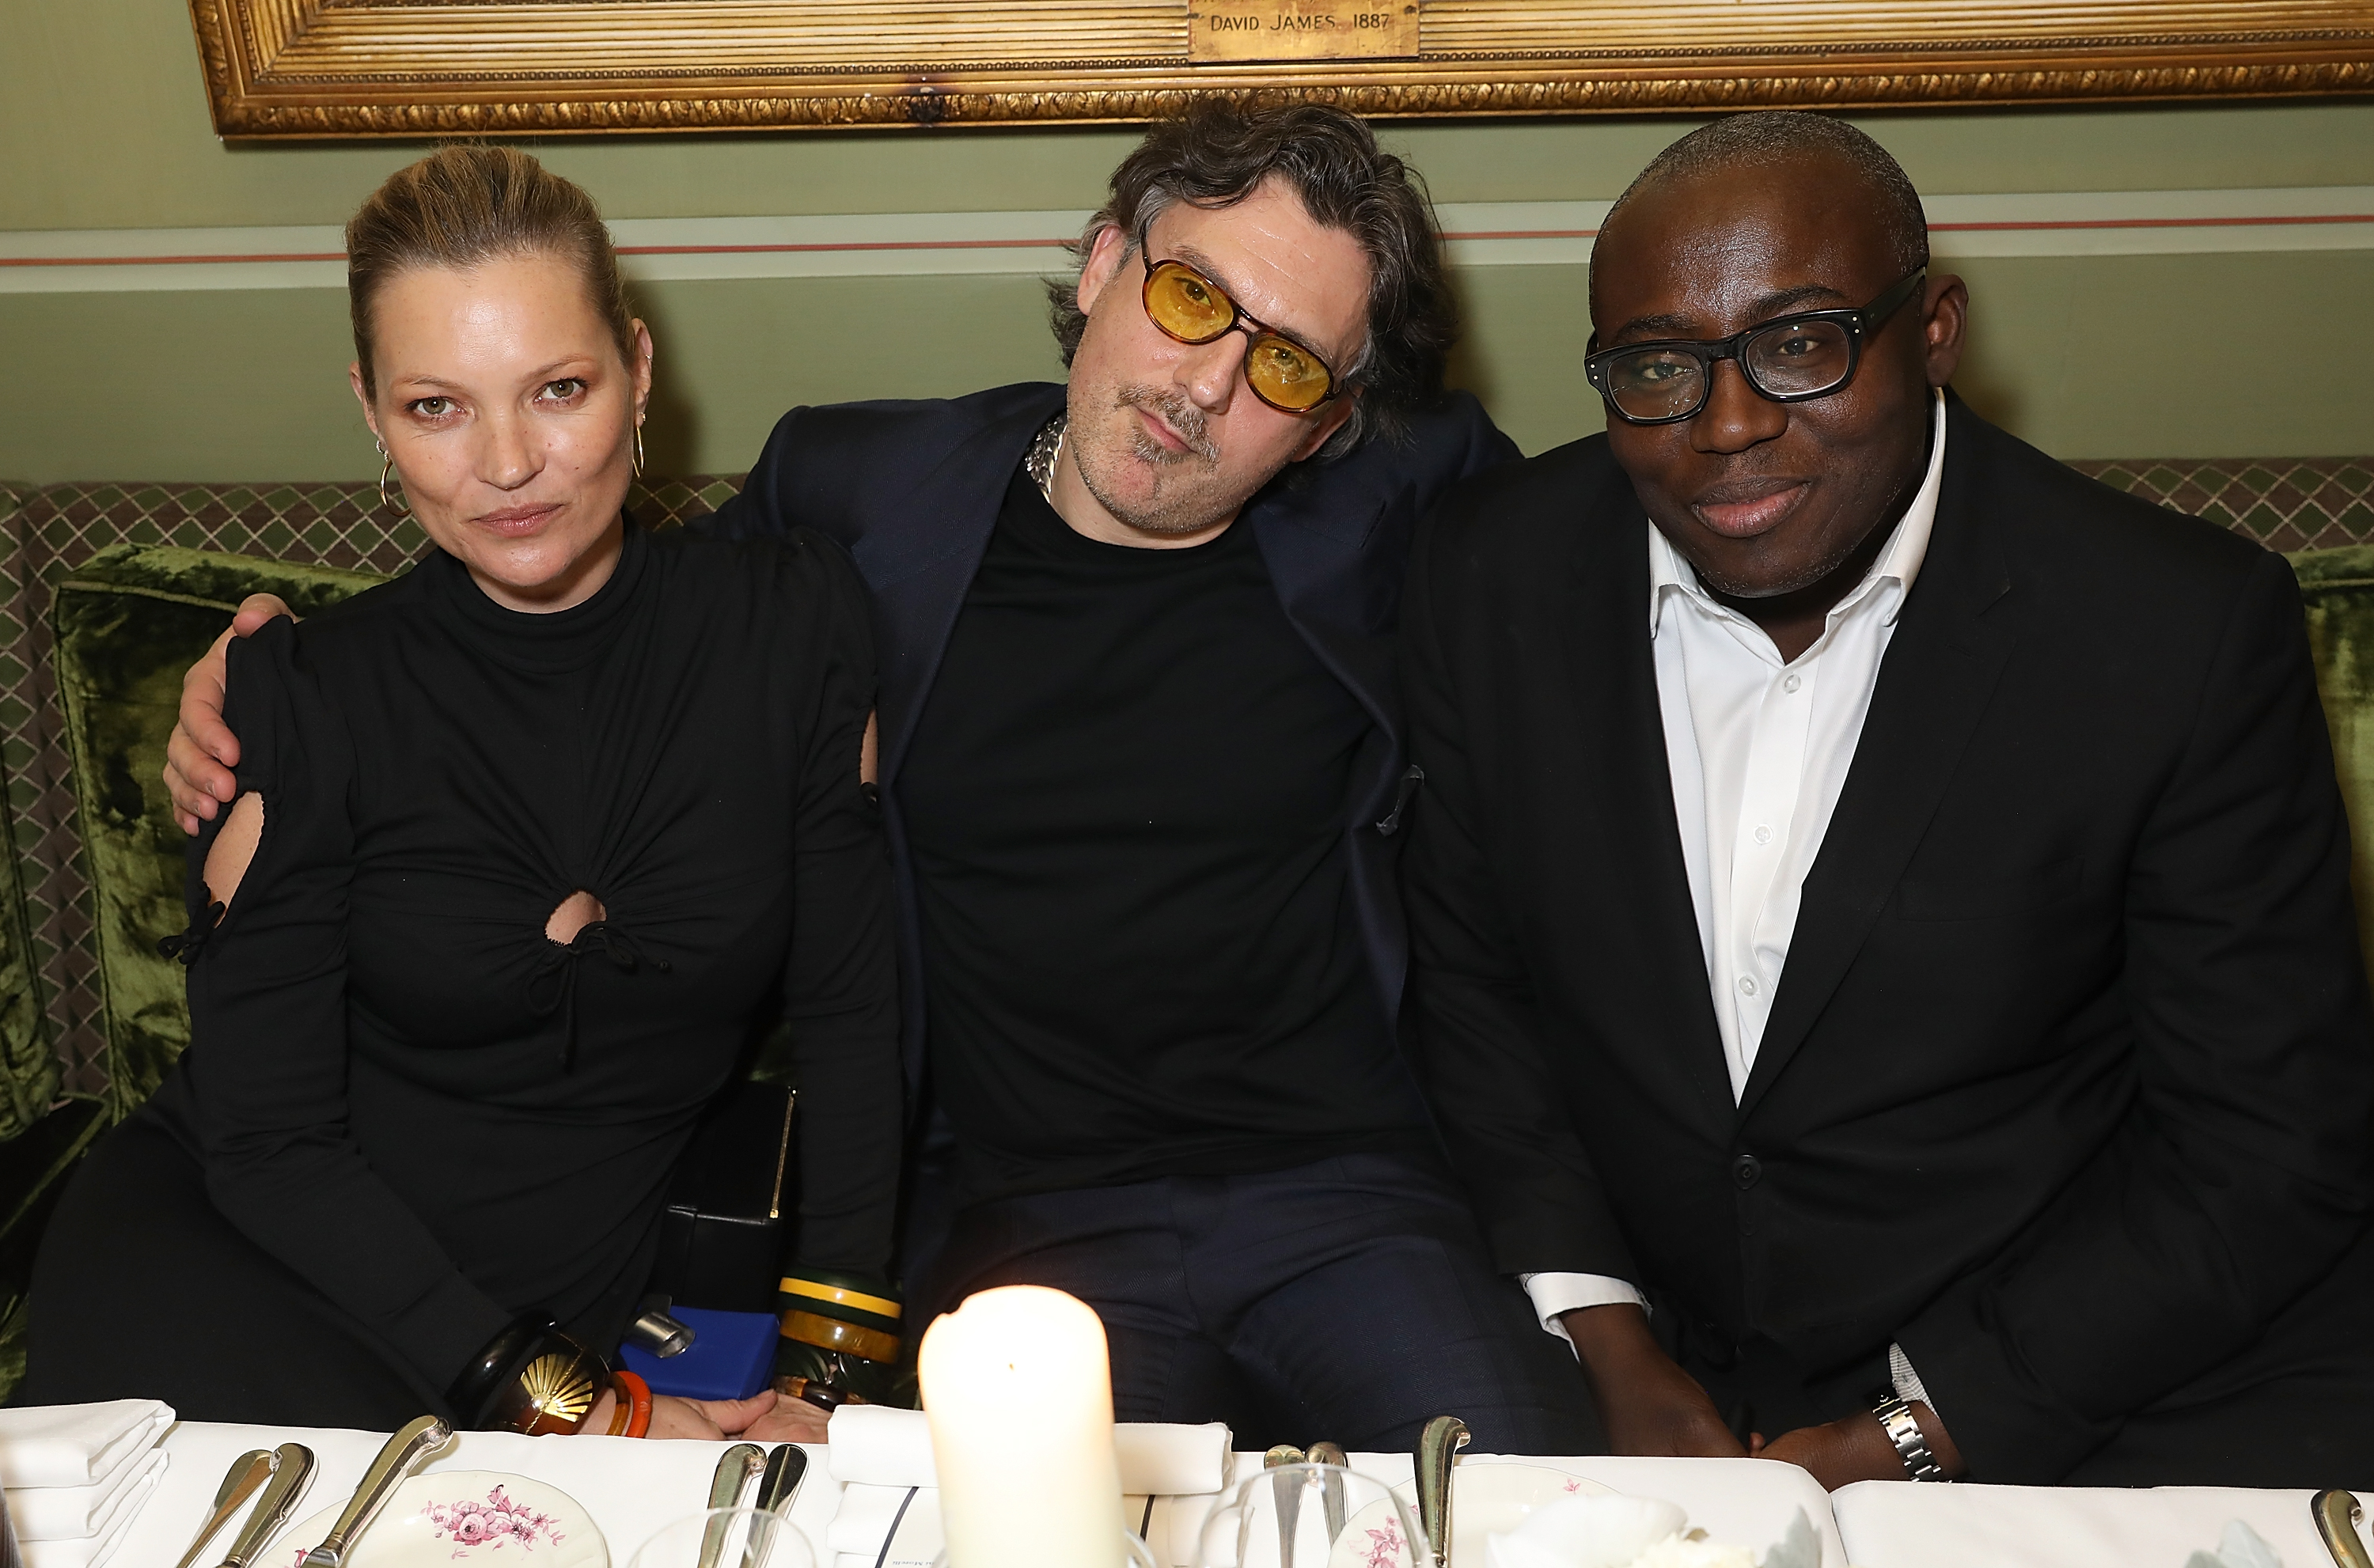 Edward Enninful and Kate Moss Host Private Dinner In Honour Of Giovanni Morelli